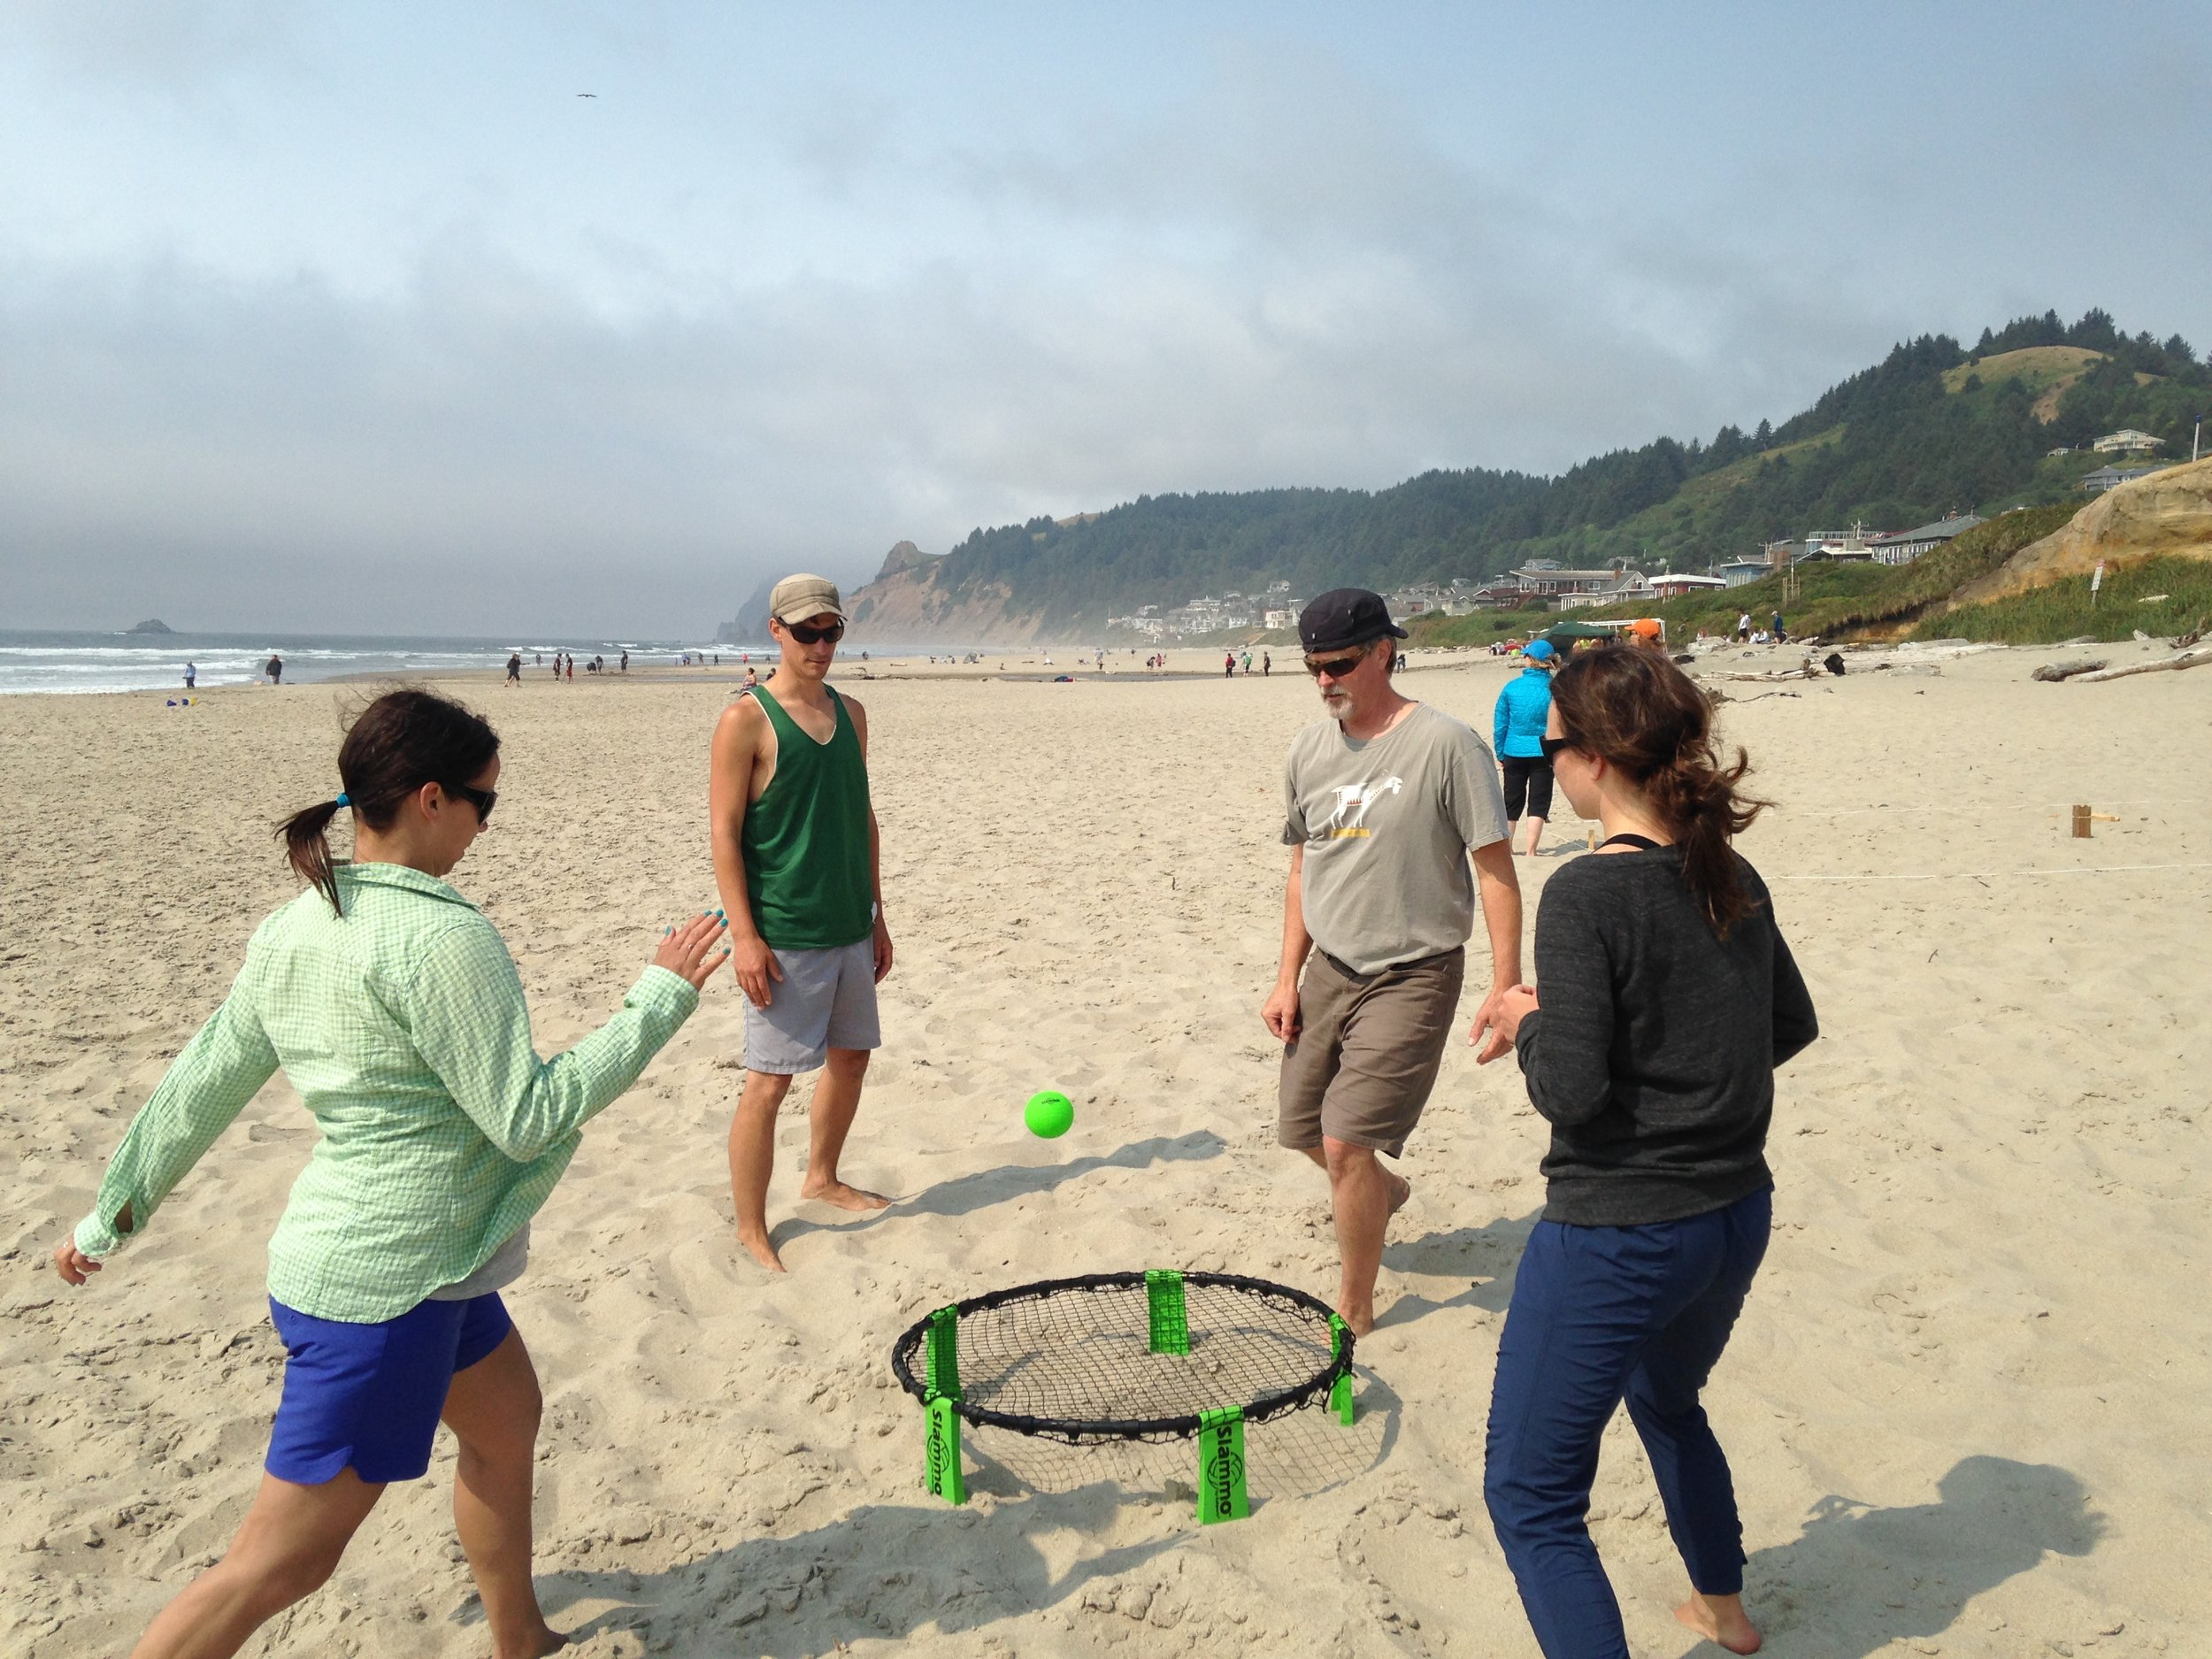 Our new favorite game, Slammo. It's active and dynamic. You'd be surprised how sore you can get from this game :)